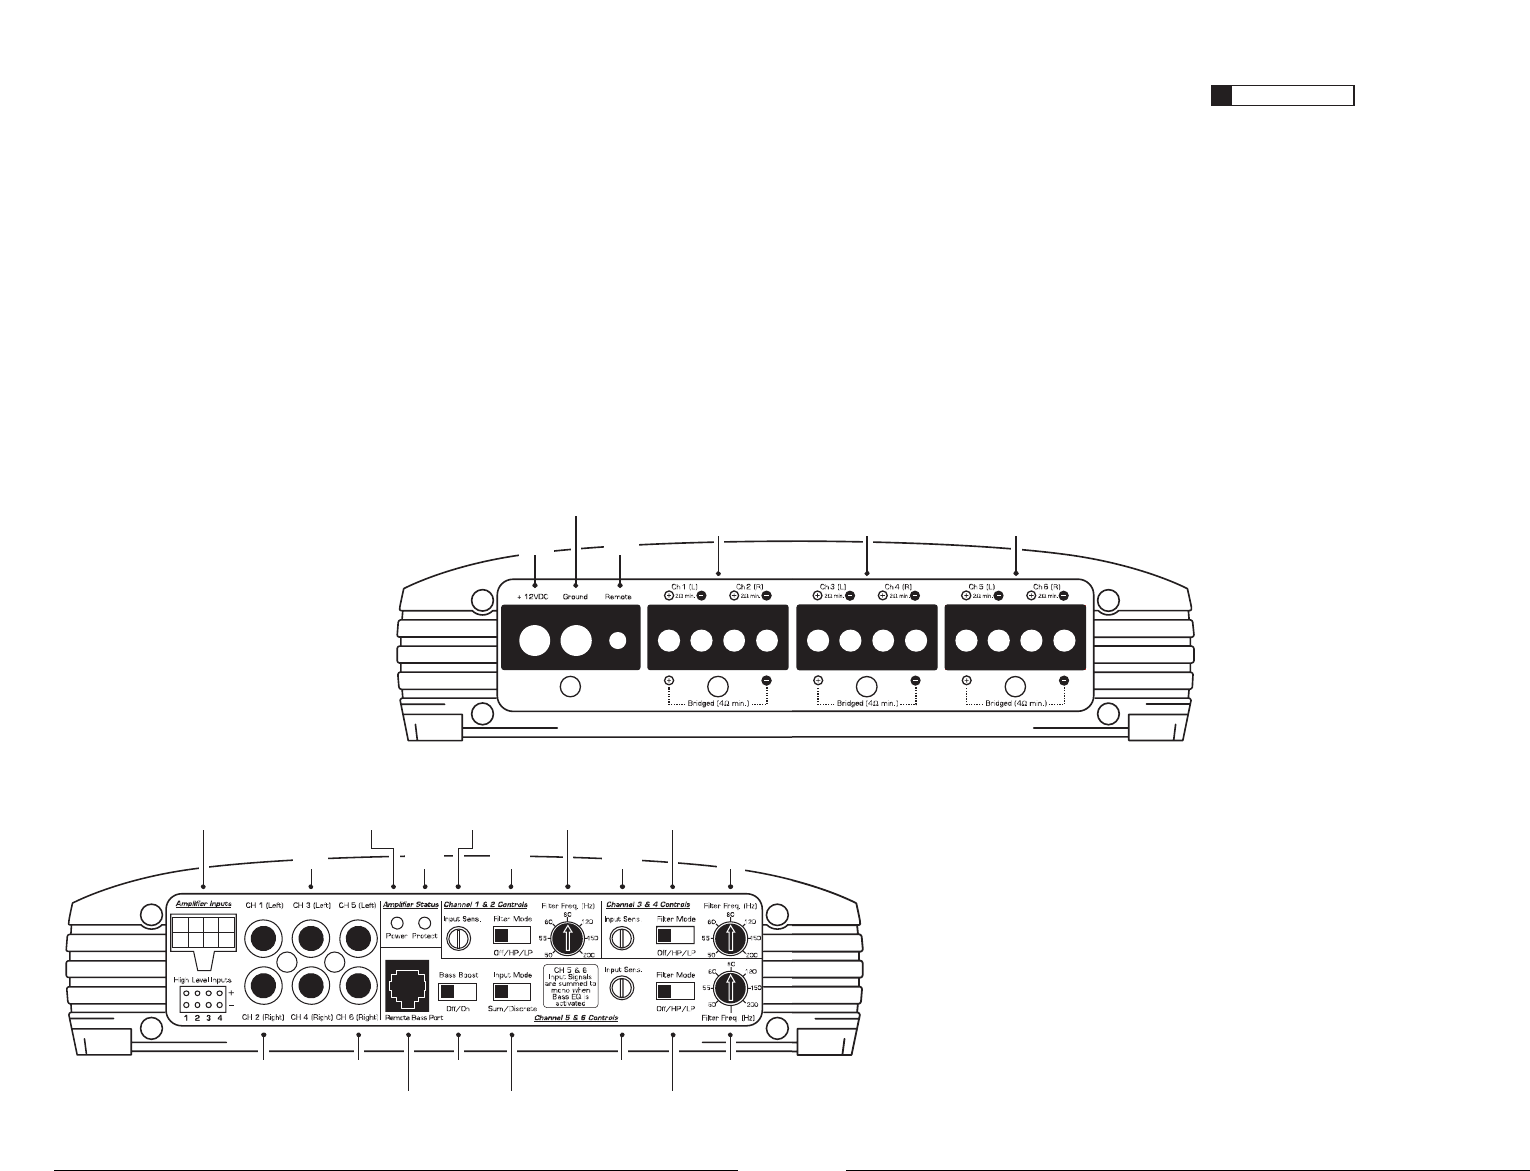 Jl audio a6450 user manual | page 7 / 11.